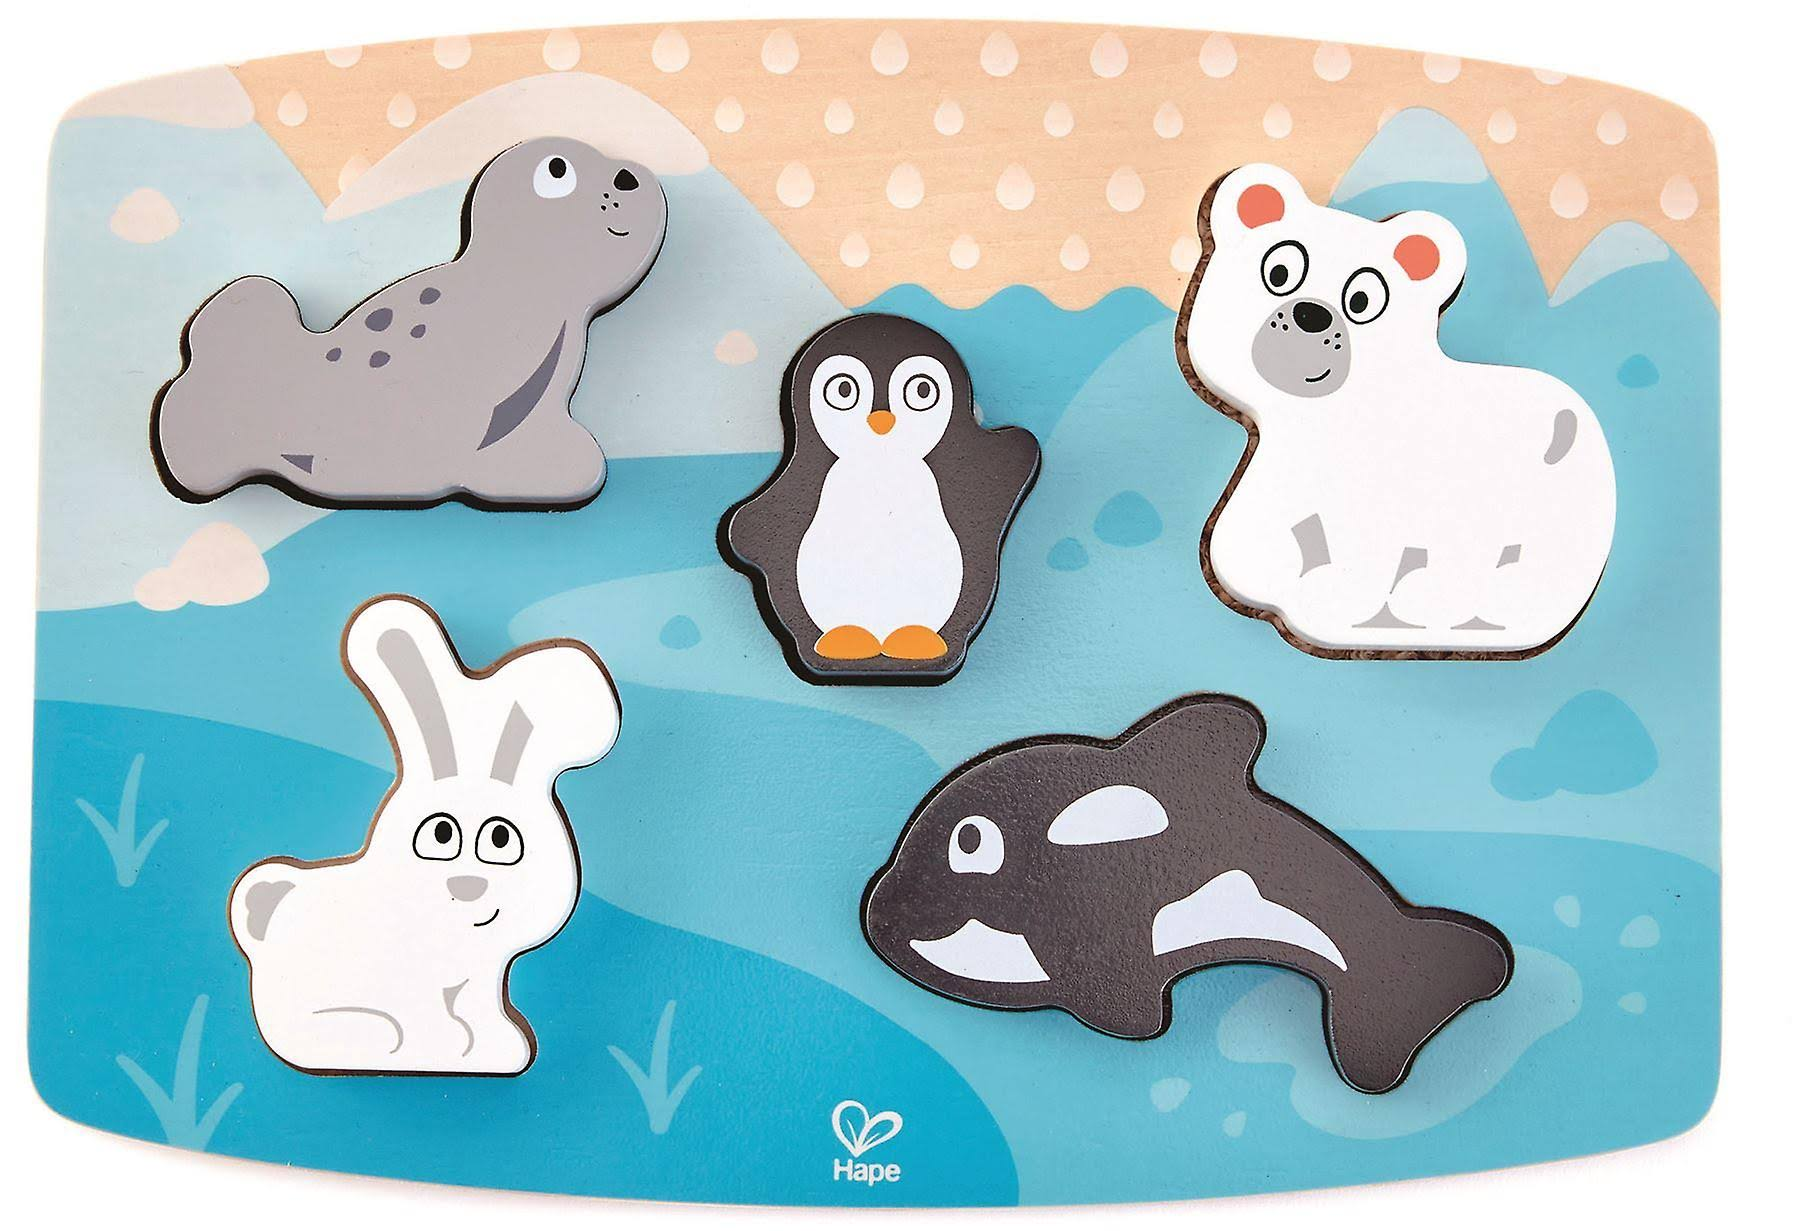 Hape Tactile Puzzle Toy - Polar Animal